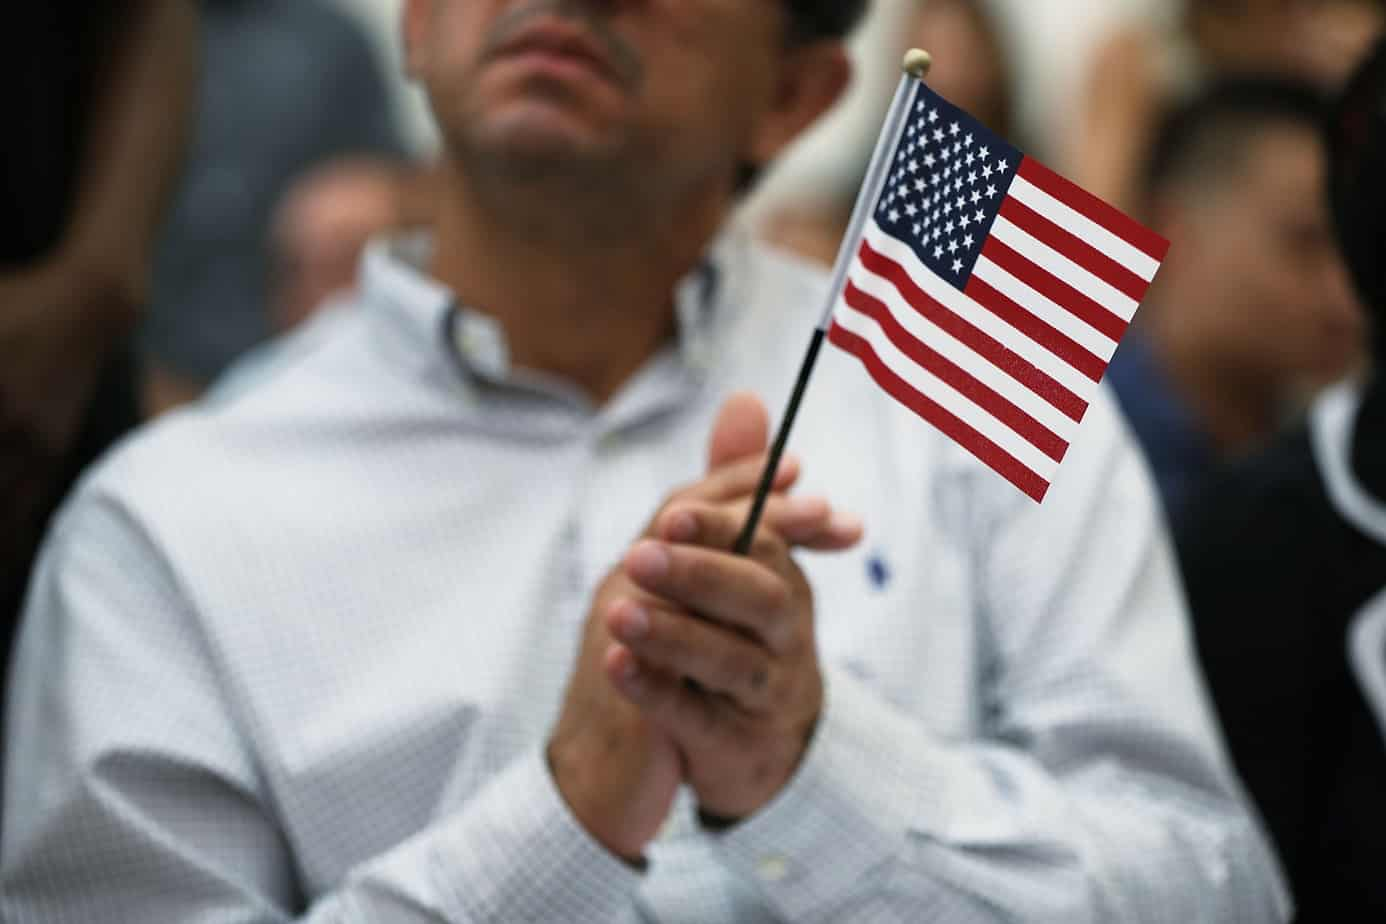 U.S. citizenship ceremony in Miami